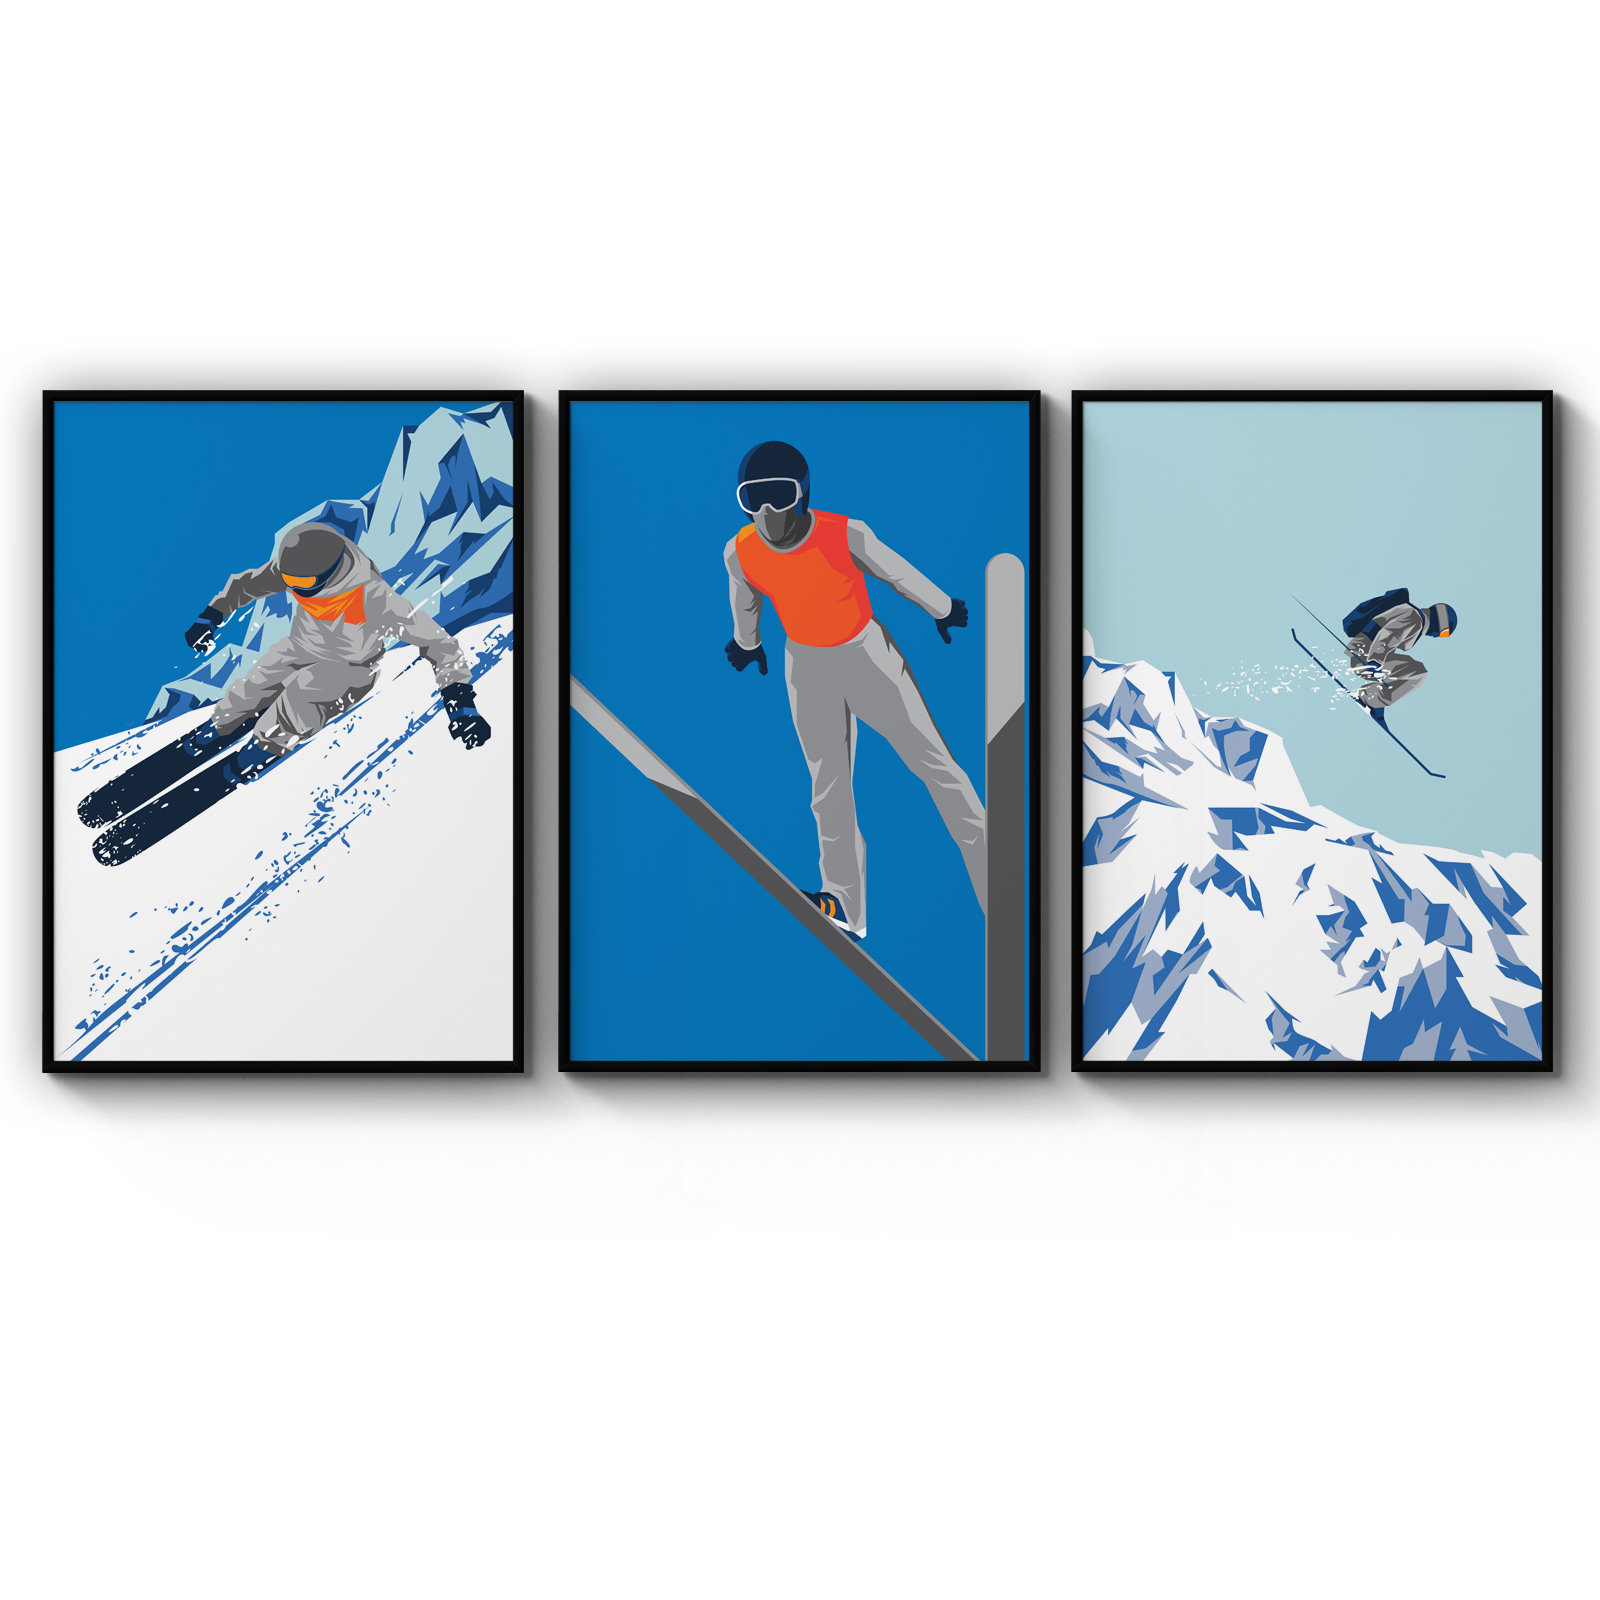 Vintage Travel Poster Classic Canadian Skiing A1,a2,a3,a4 Sizes